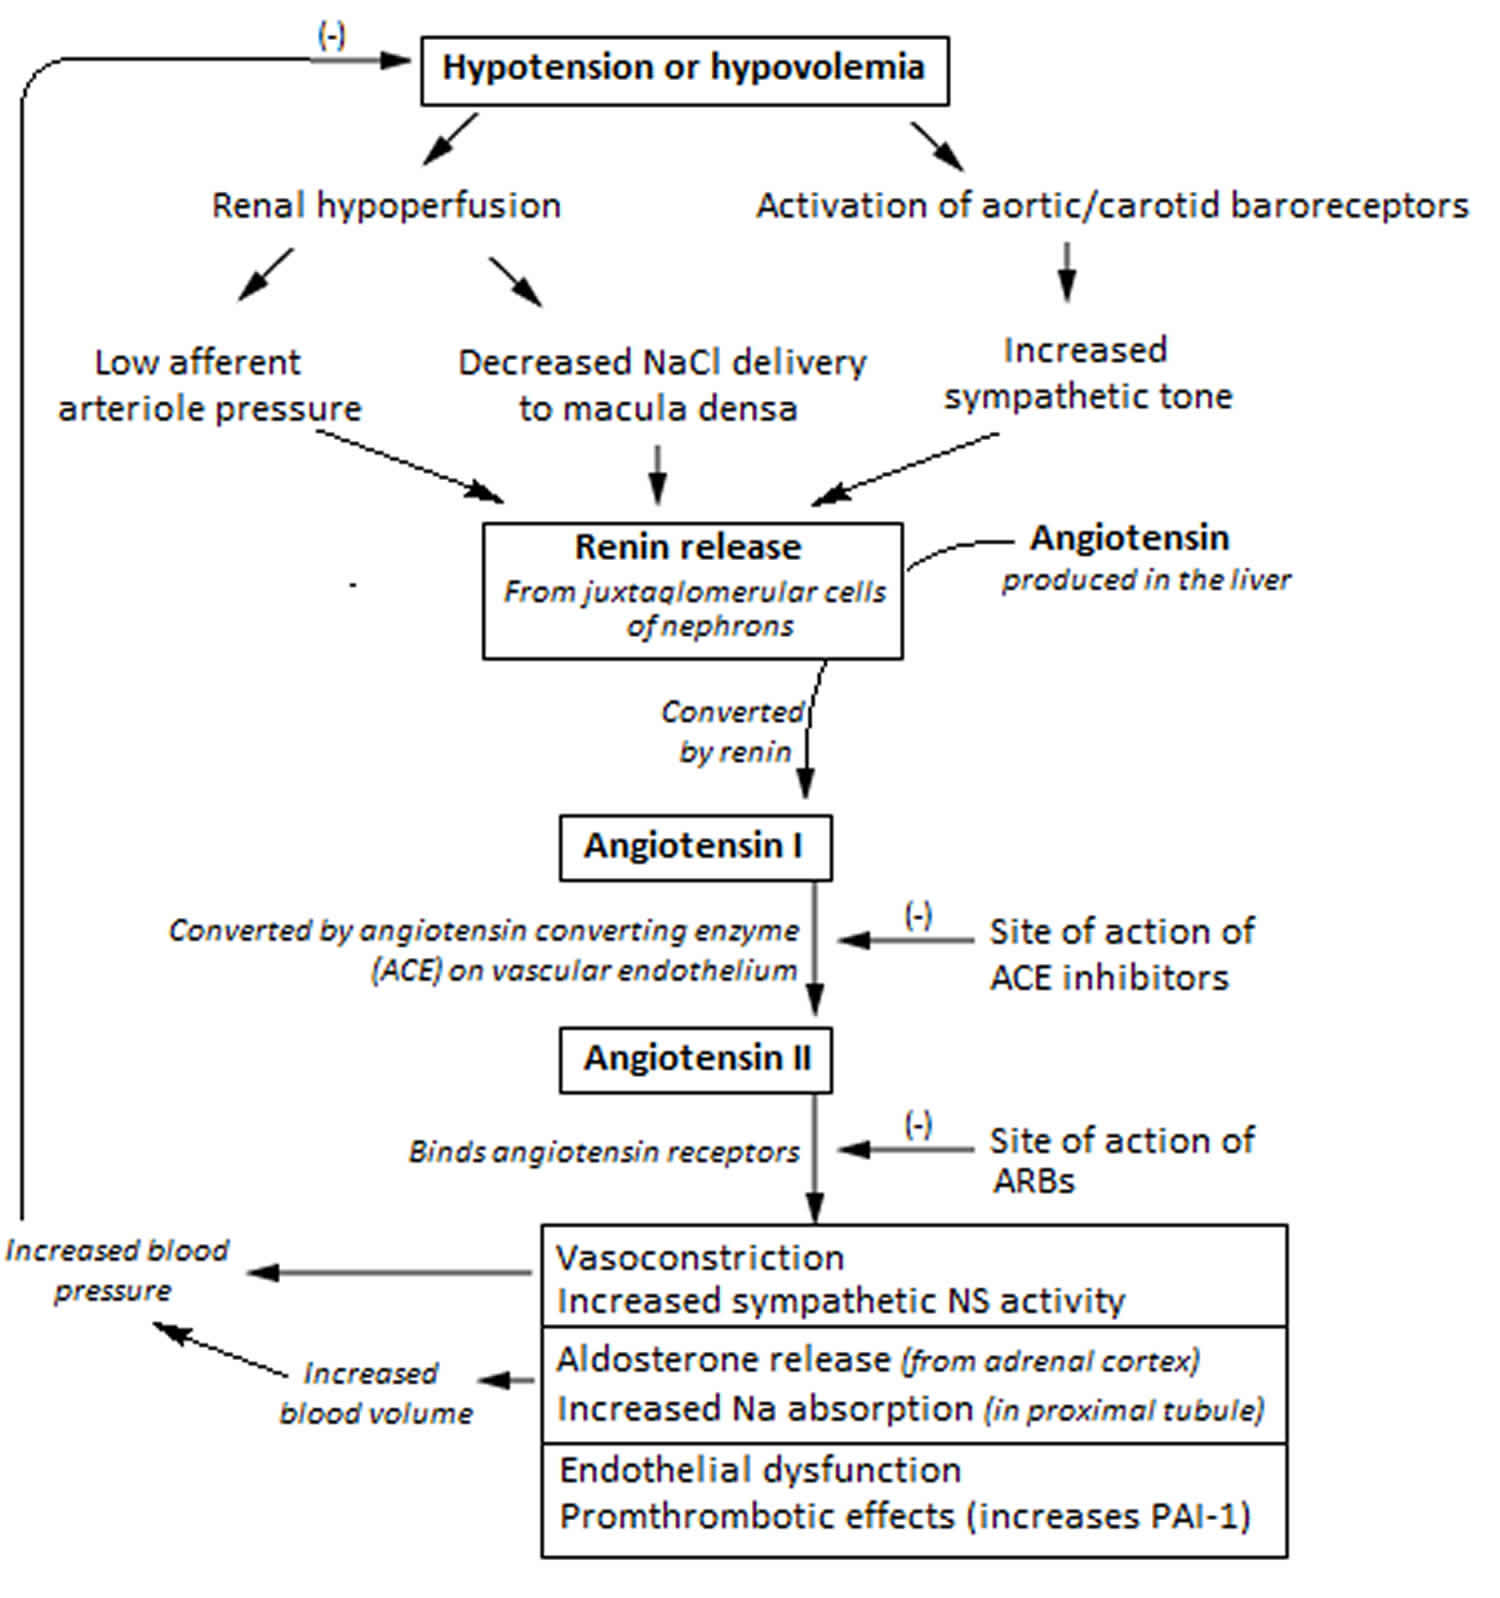 Renin angiotensin aldosterone system mechanism of action